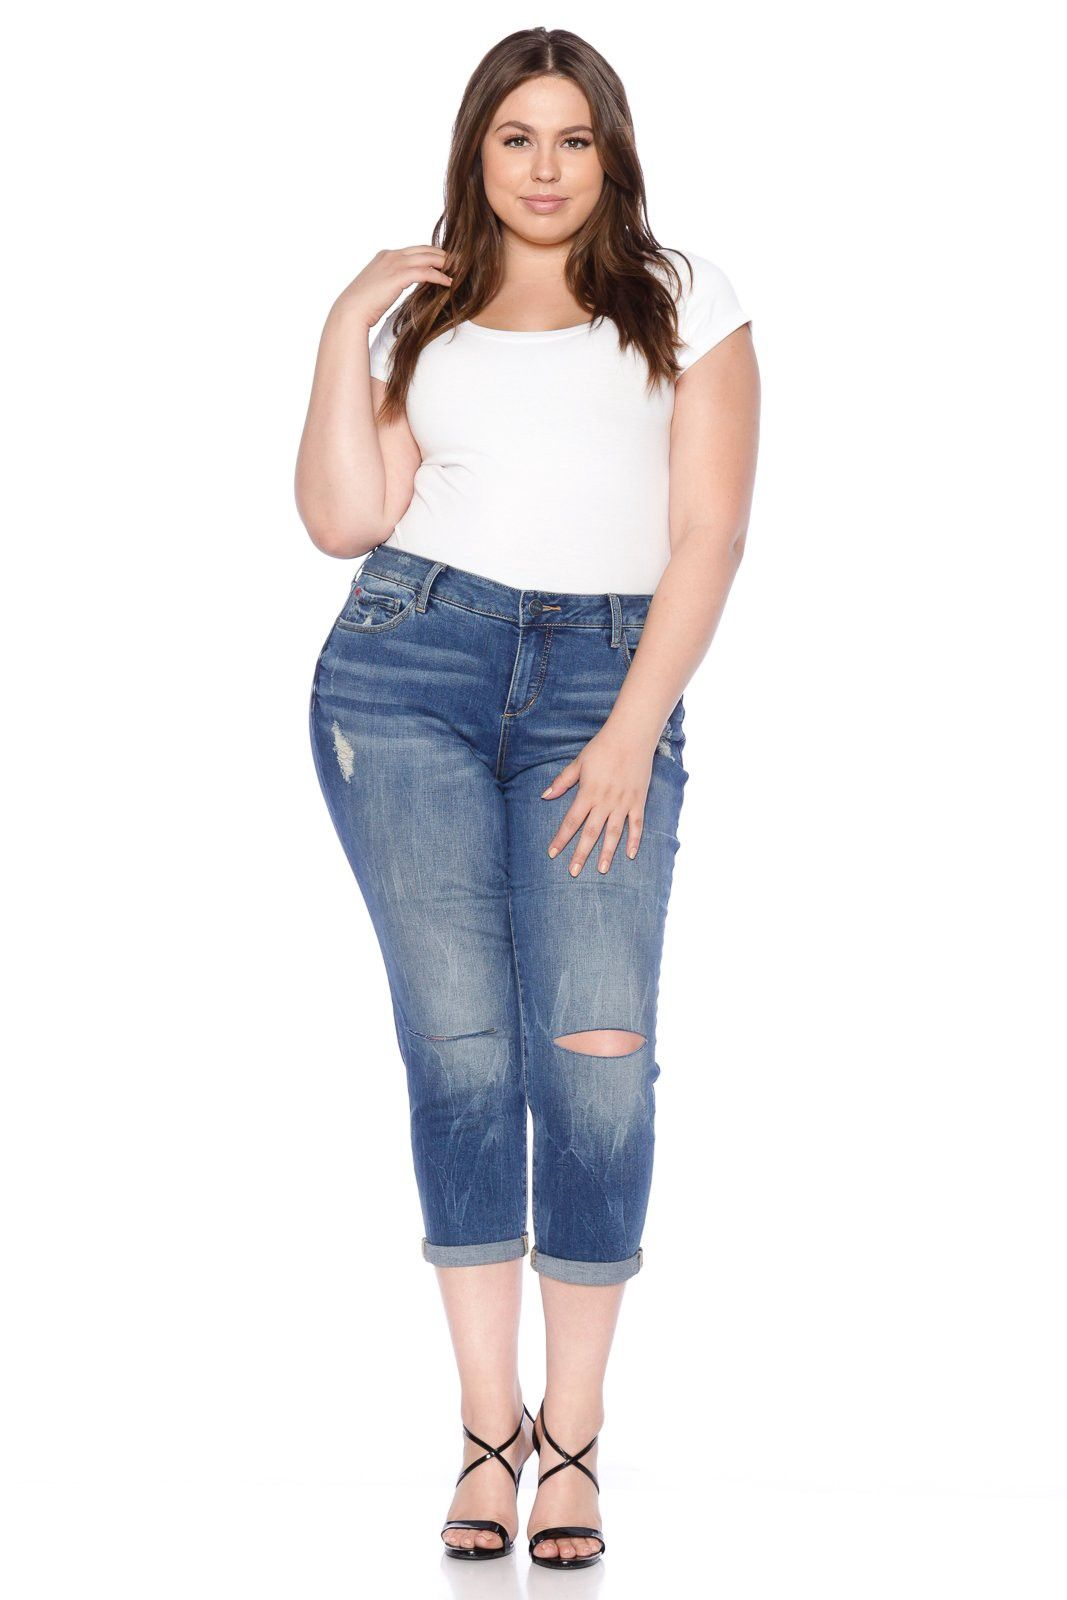 The Easy Fit - CARALYN by SLINK Jeans in 2018  29b11a23e9